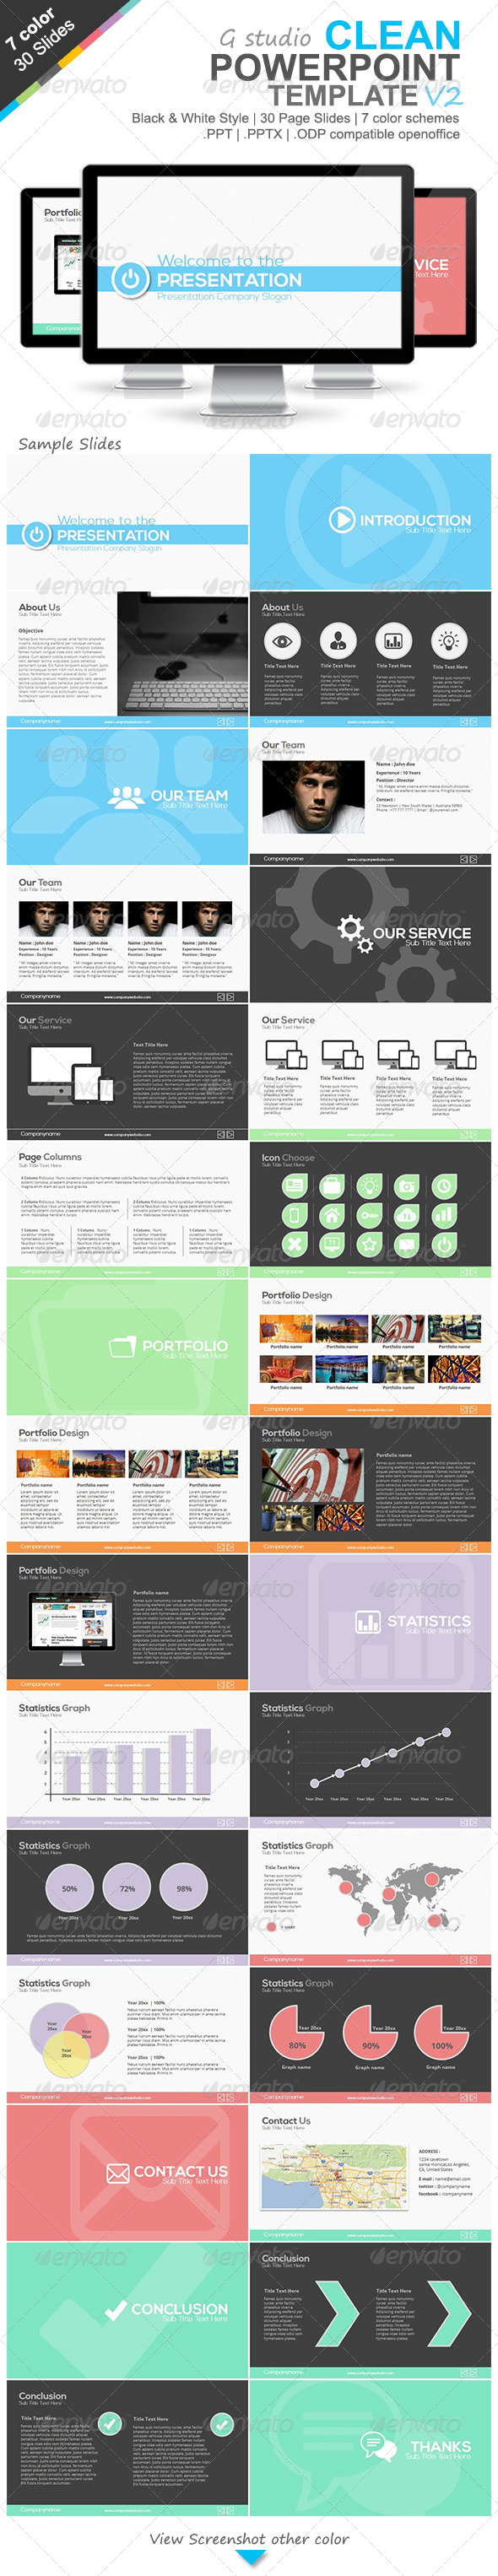 GraphicRiver Gstudio Clean Powerpoint Template V2 4635267